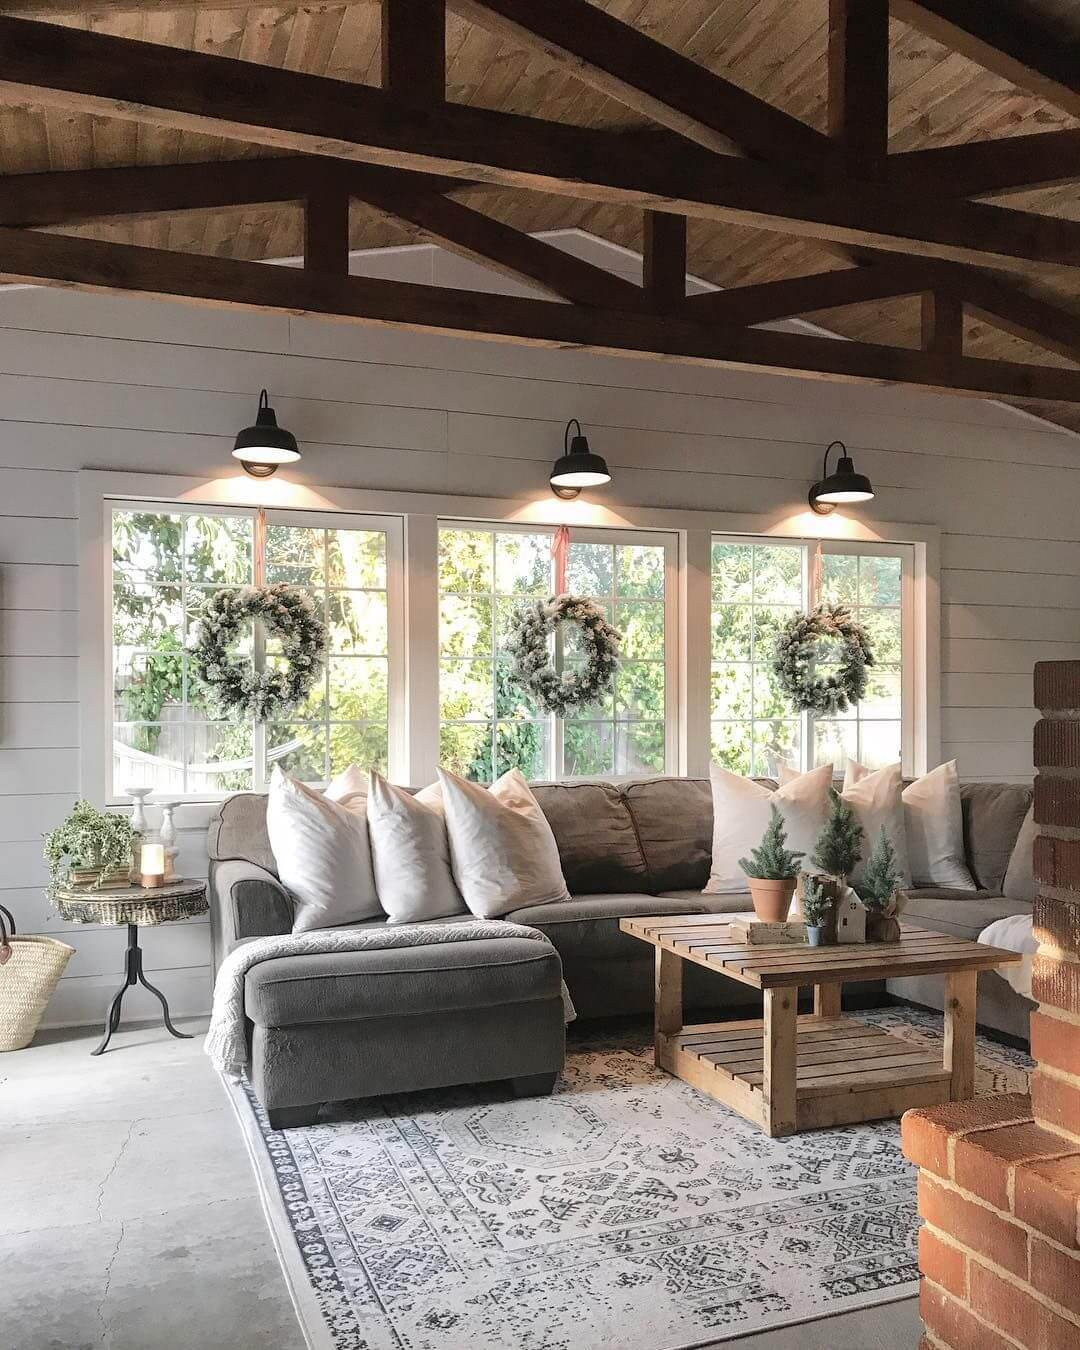 23. Why Itu0027s Called a Great Room & 35+ Best Farmhouse Interior Ideas and Designs for 2019